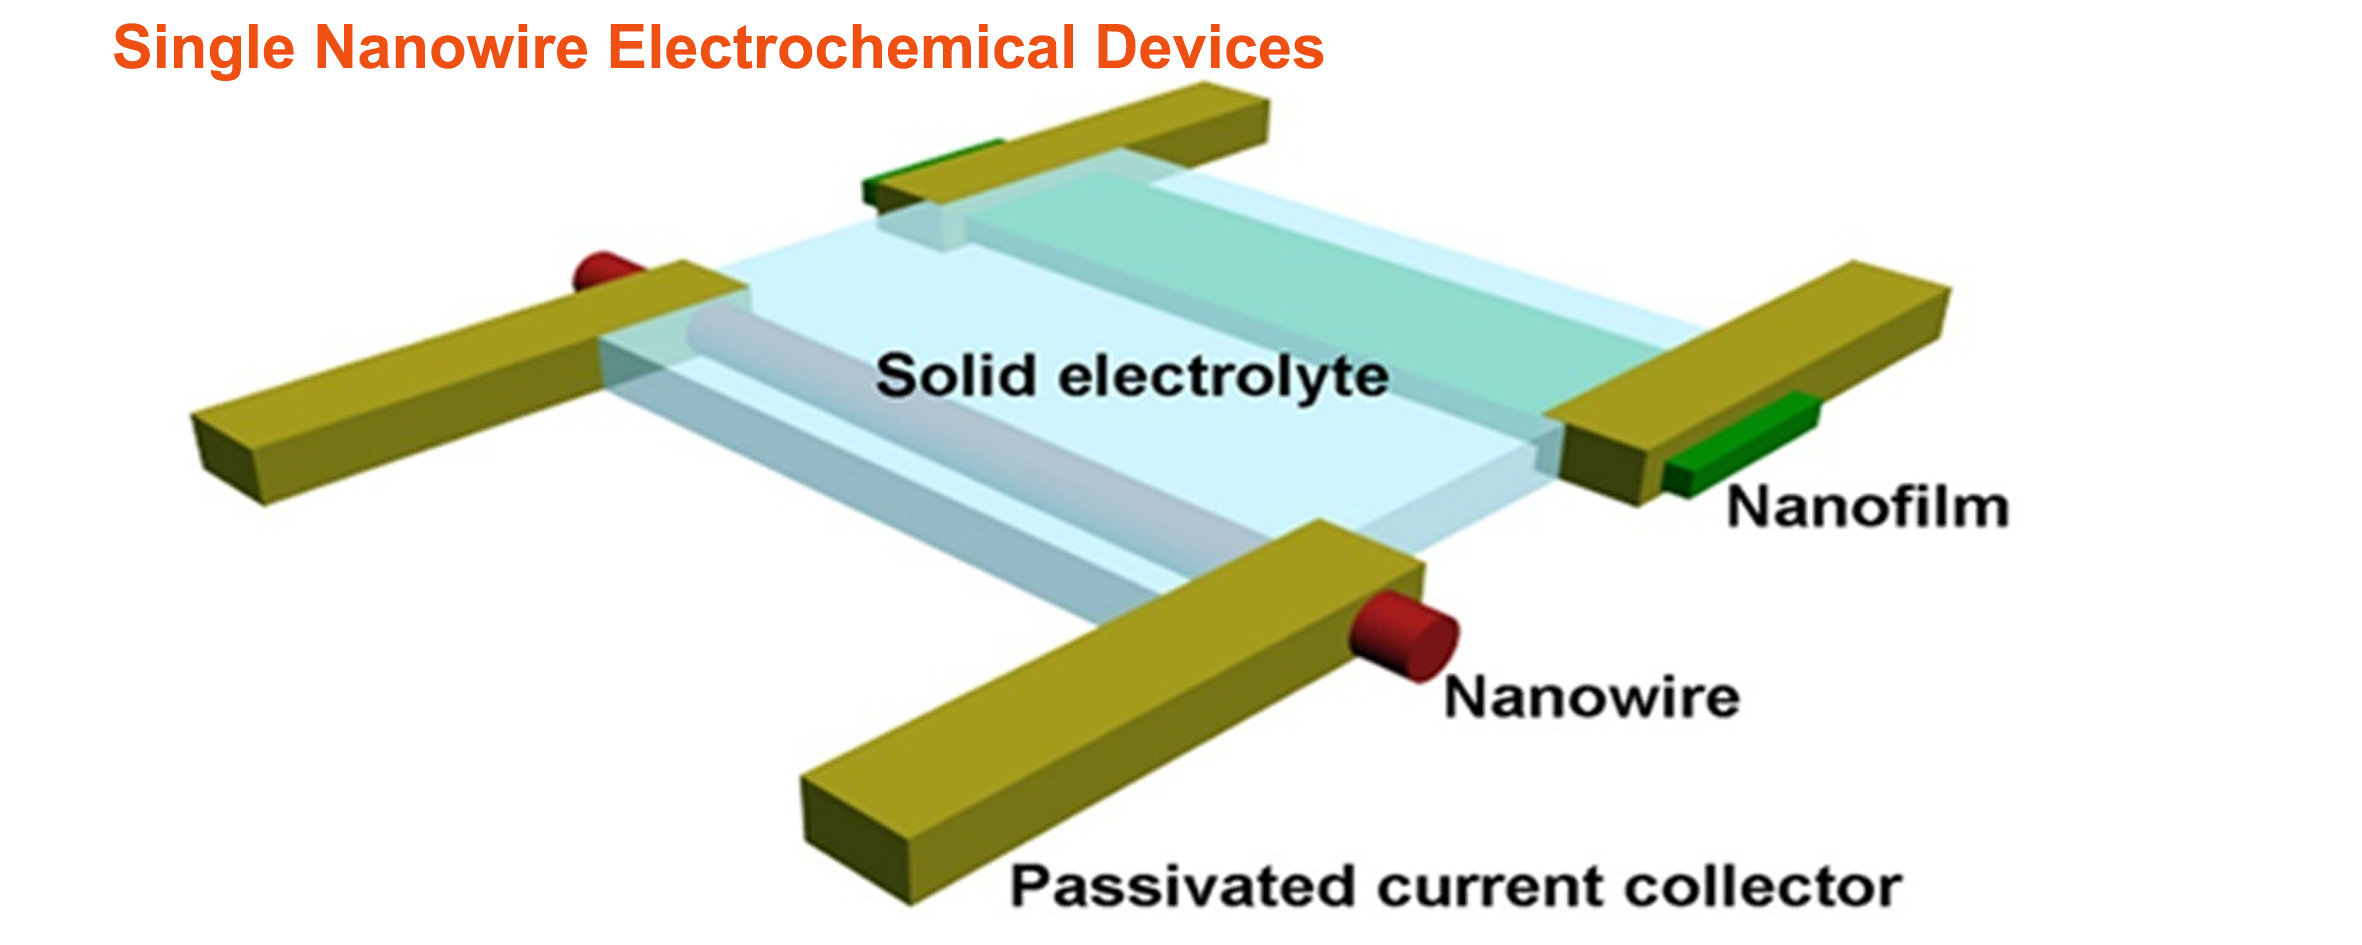 Single Nanowire Electrochemical Devices